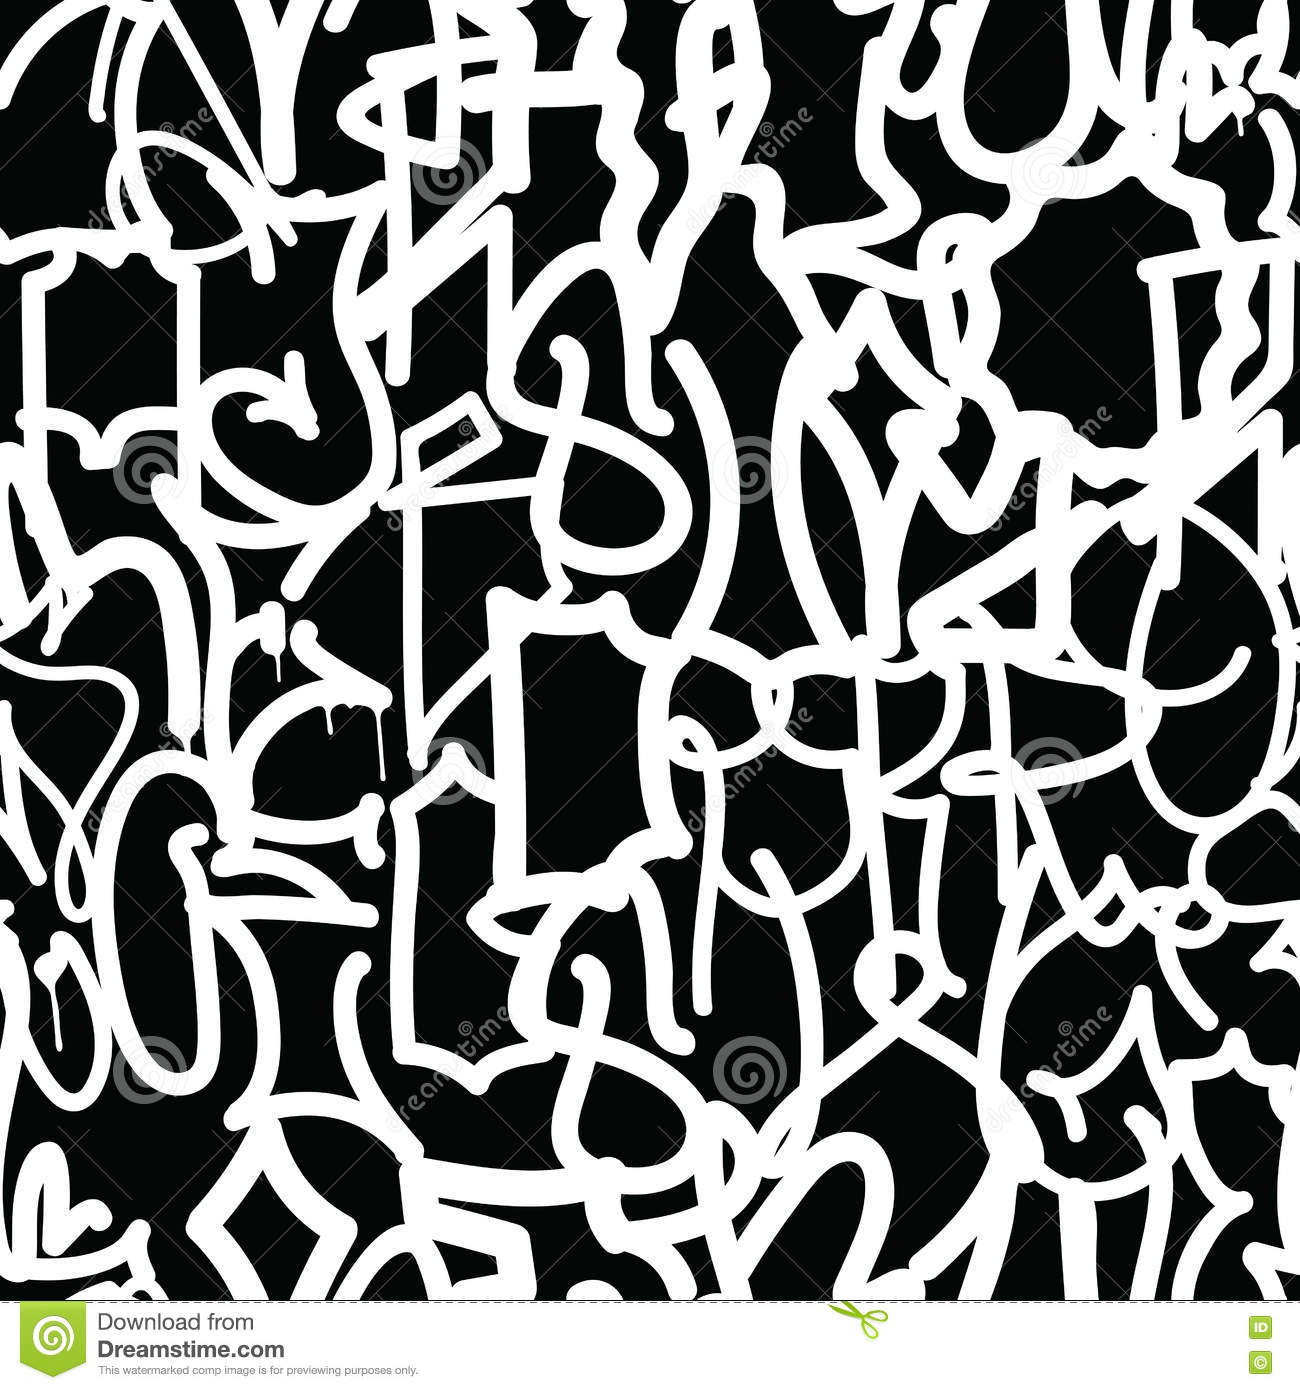 Vector Graffiti Tags Monocrome Background Download Free Vector Art Stock Graphics Images